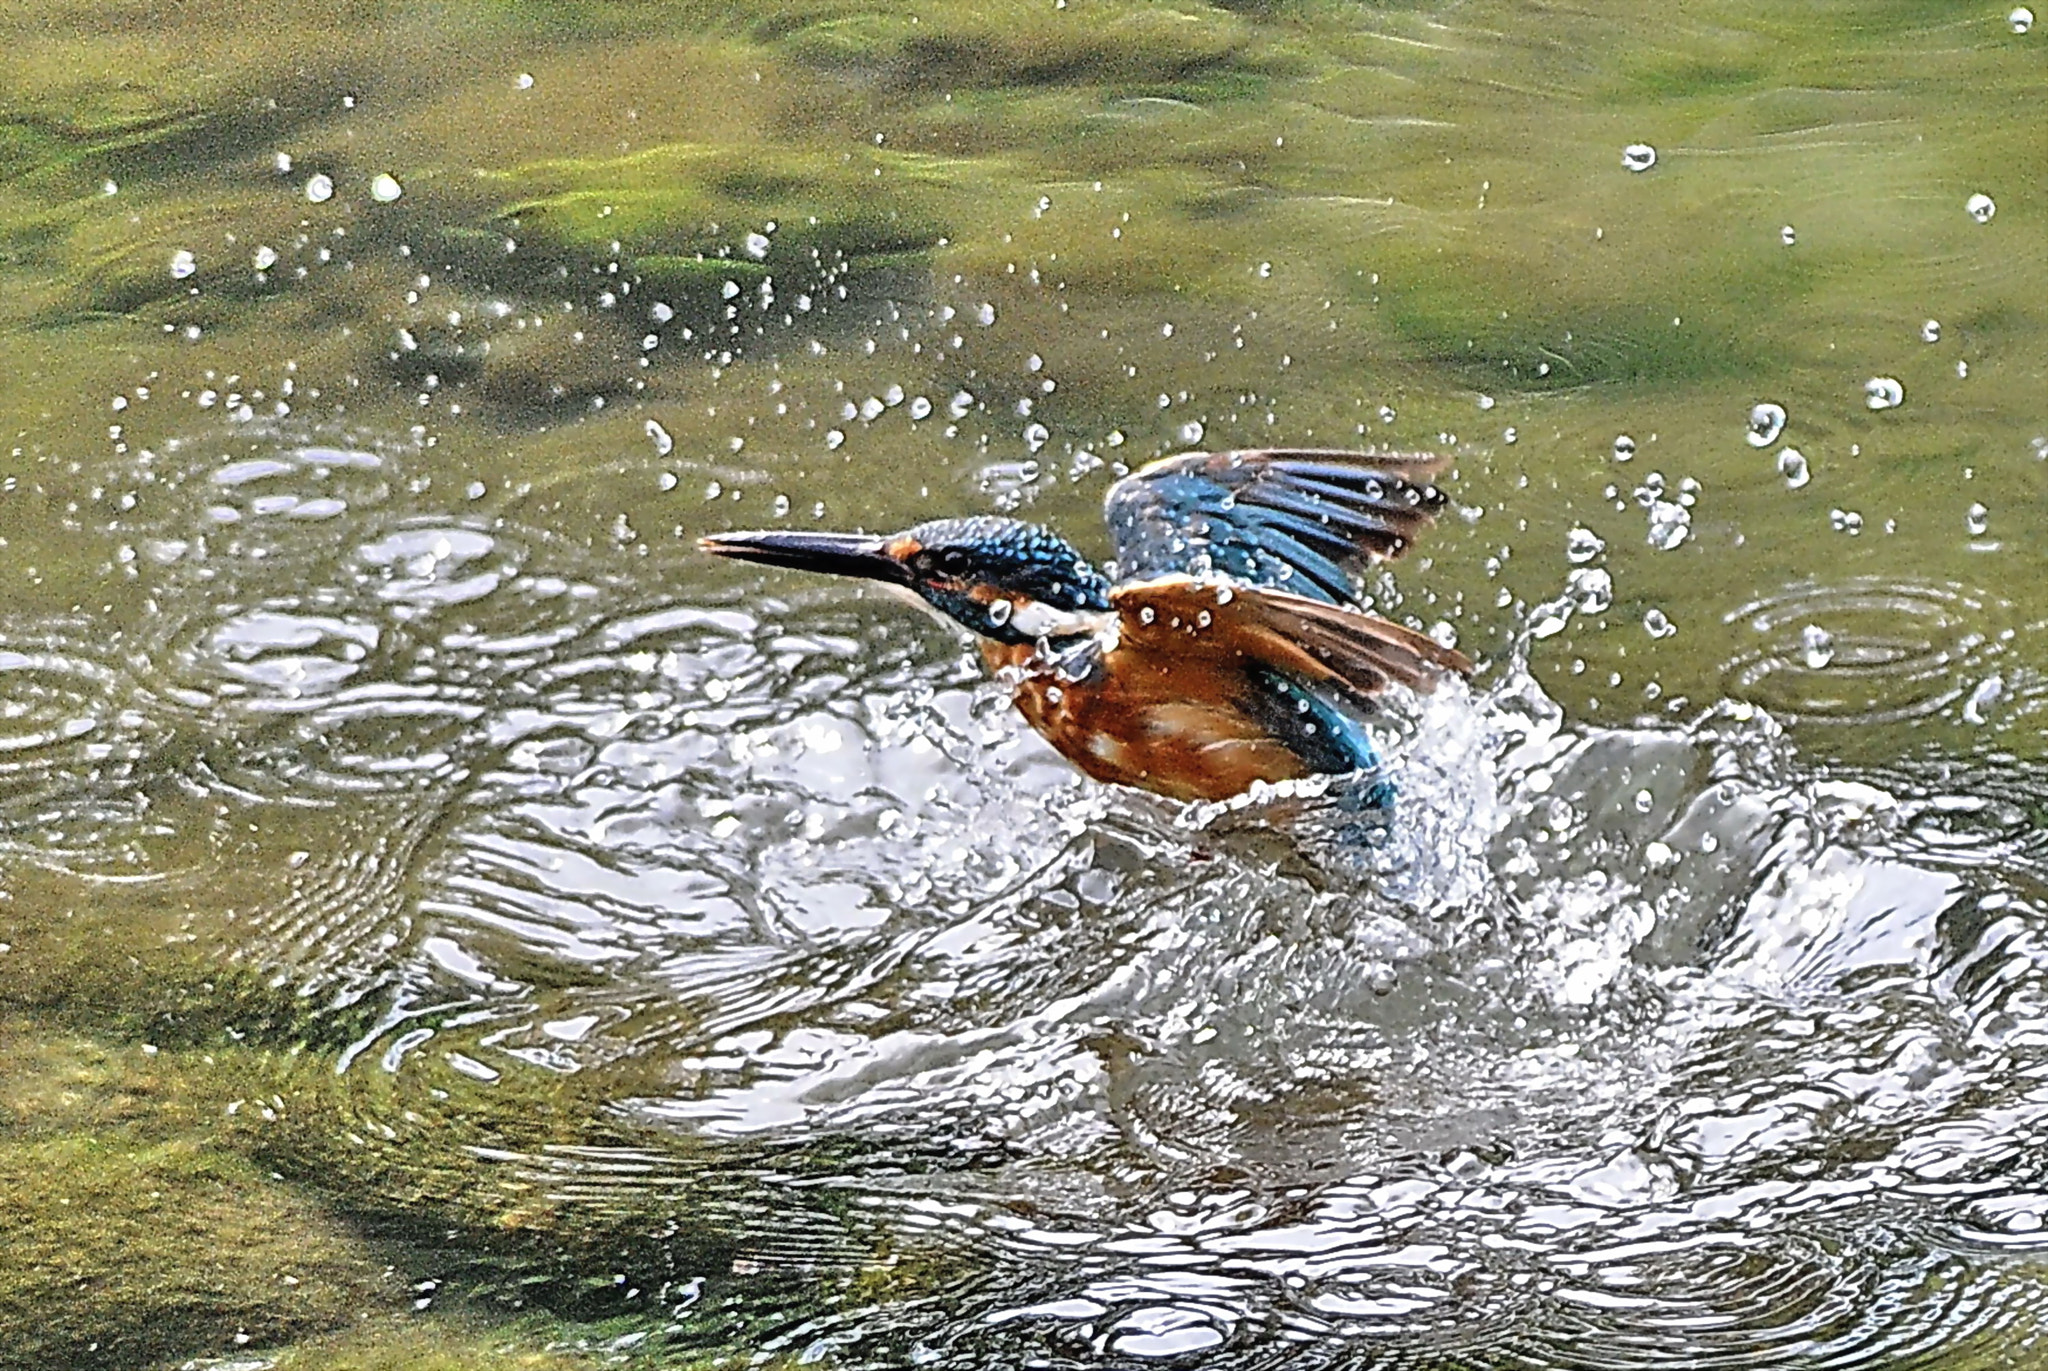 Photograph Kingfisher bathing by KEN OHSAWA on 500px